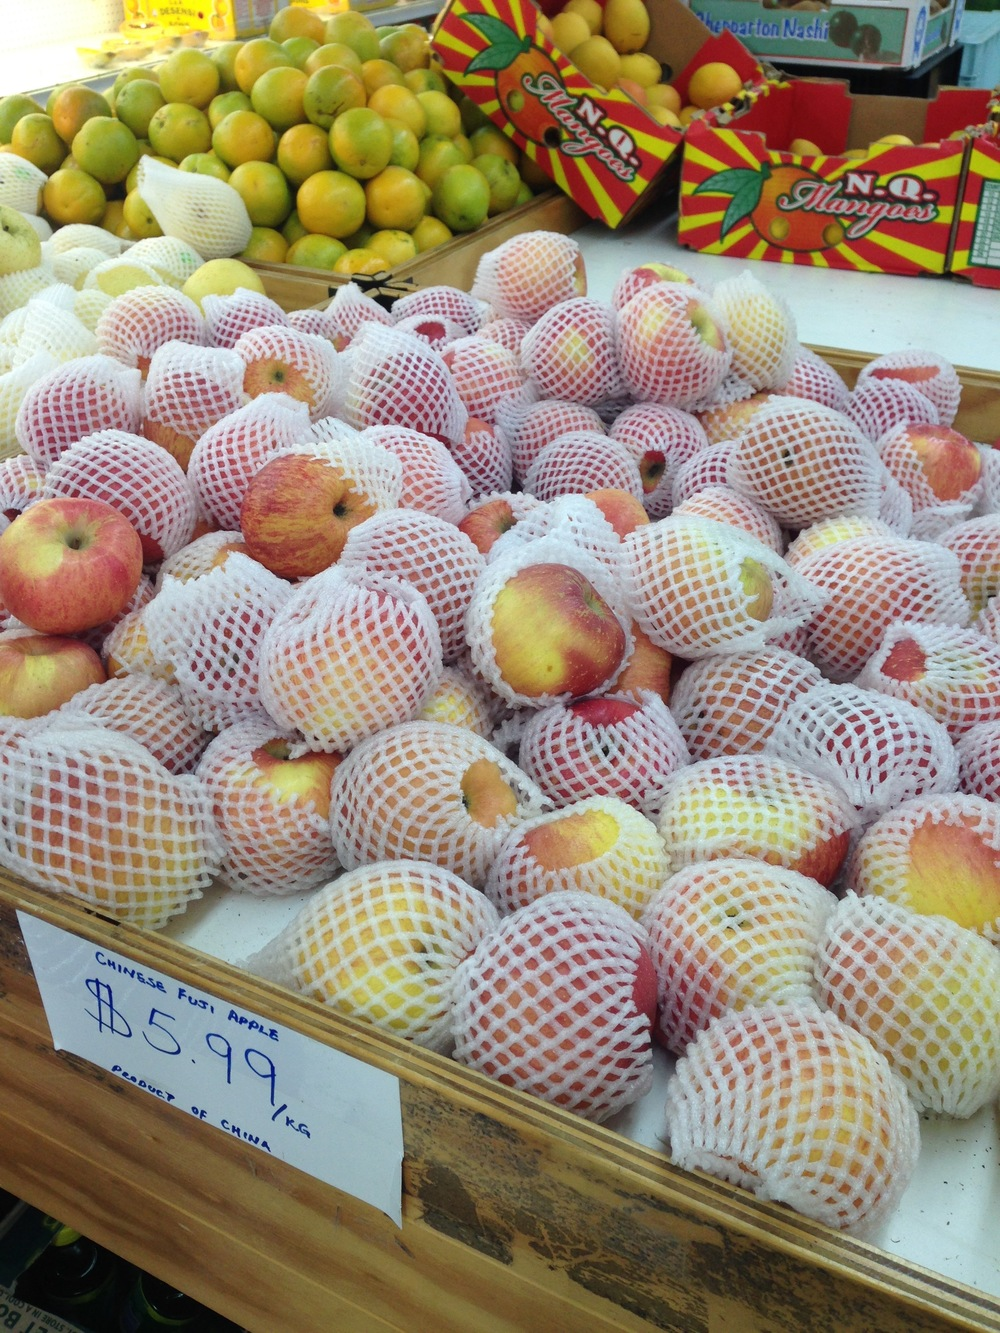 Fuji apples in Chinatown, each needing their own polystyrene protector.